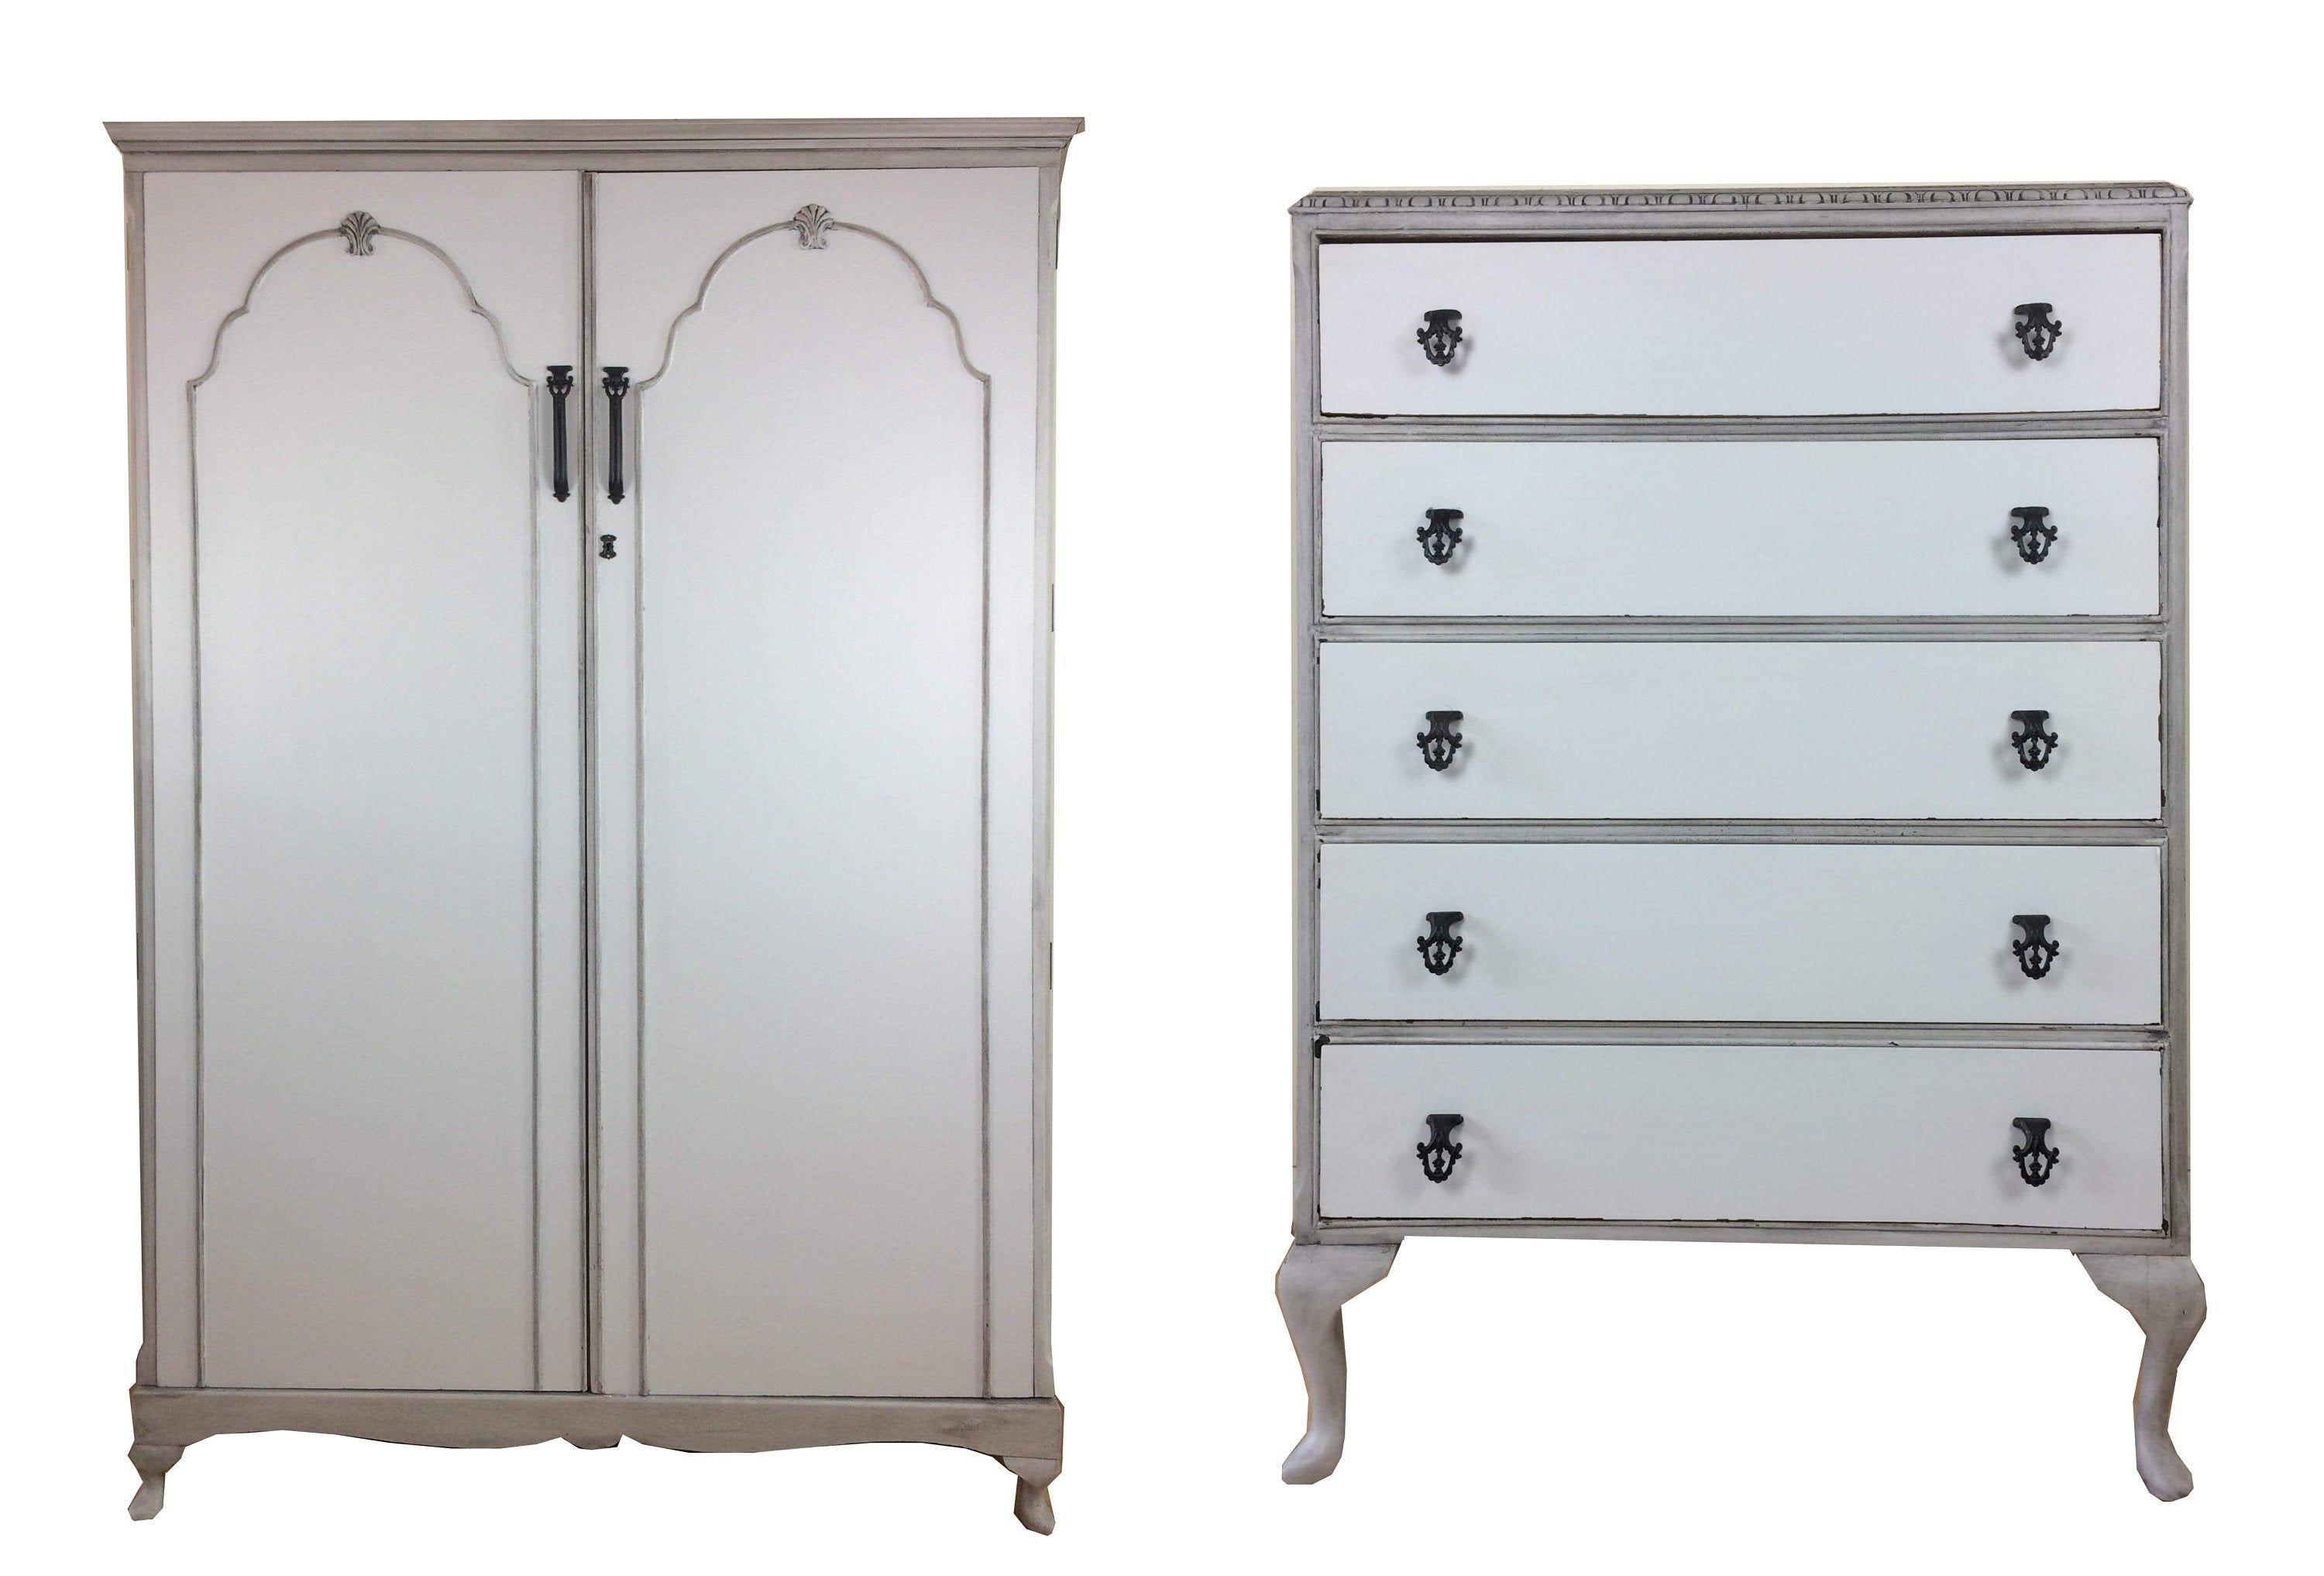 Grey Large Heavy French Country Style 2 Piece Bedroom Set Wardrobe Chest Of Drawers Dresser Tallboy With French Country Style Dresser Drawers Furniture Shop [ 2034 x 3000 Pixel ]